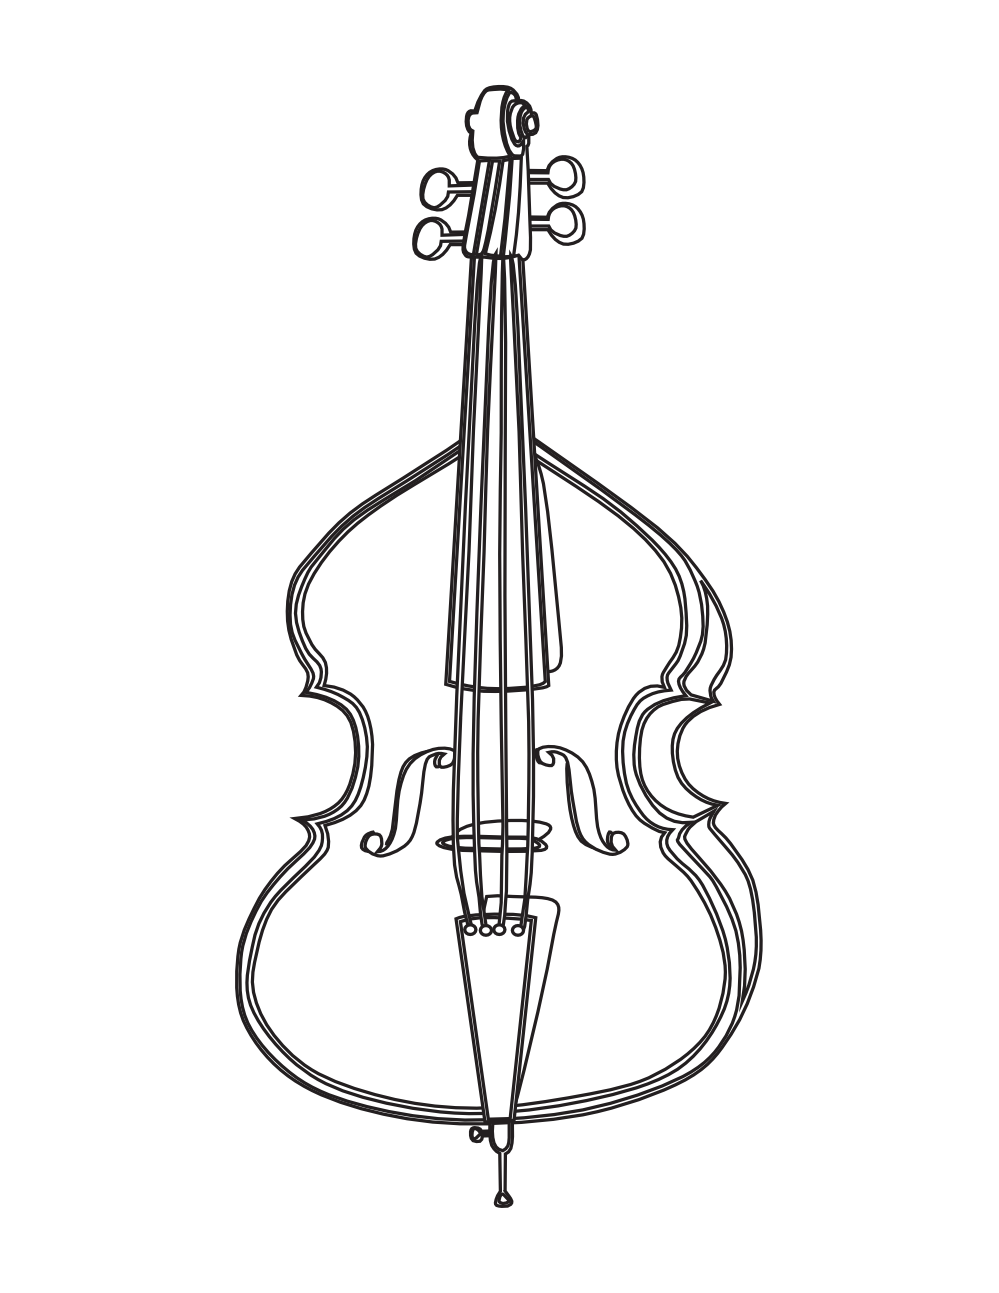 . Cello clipart black and white